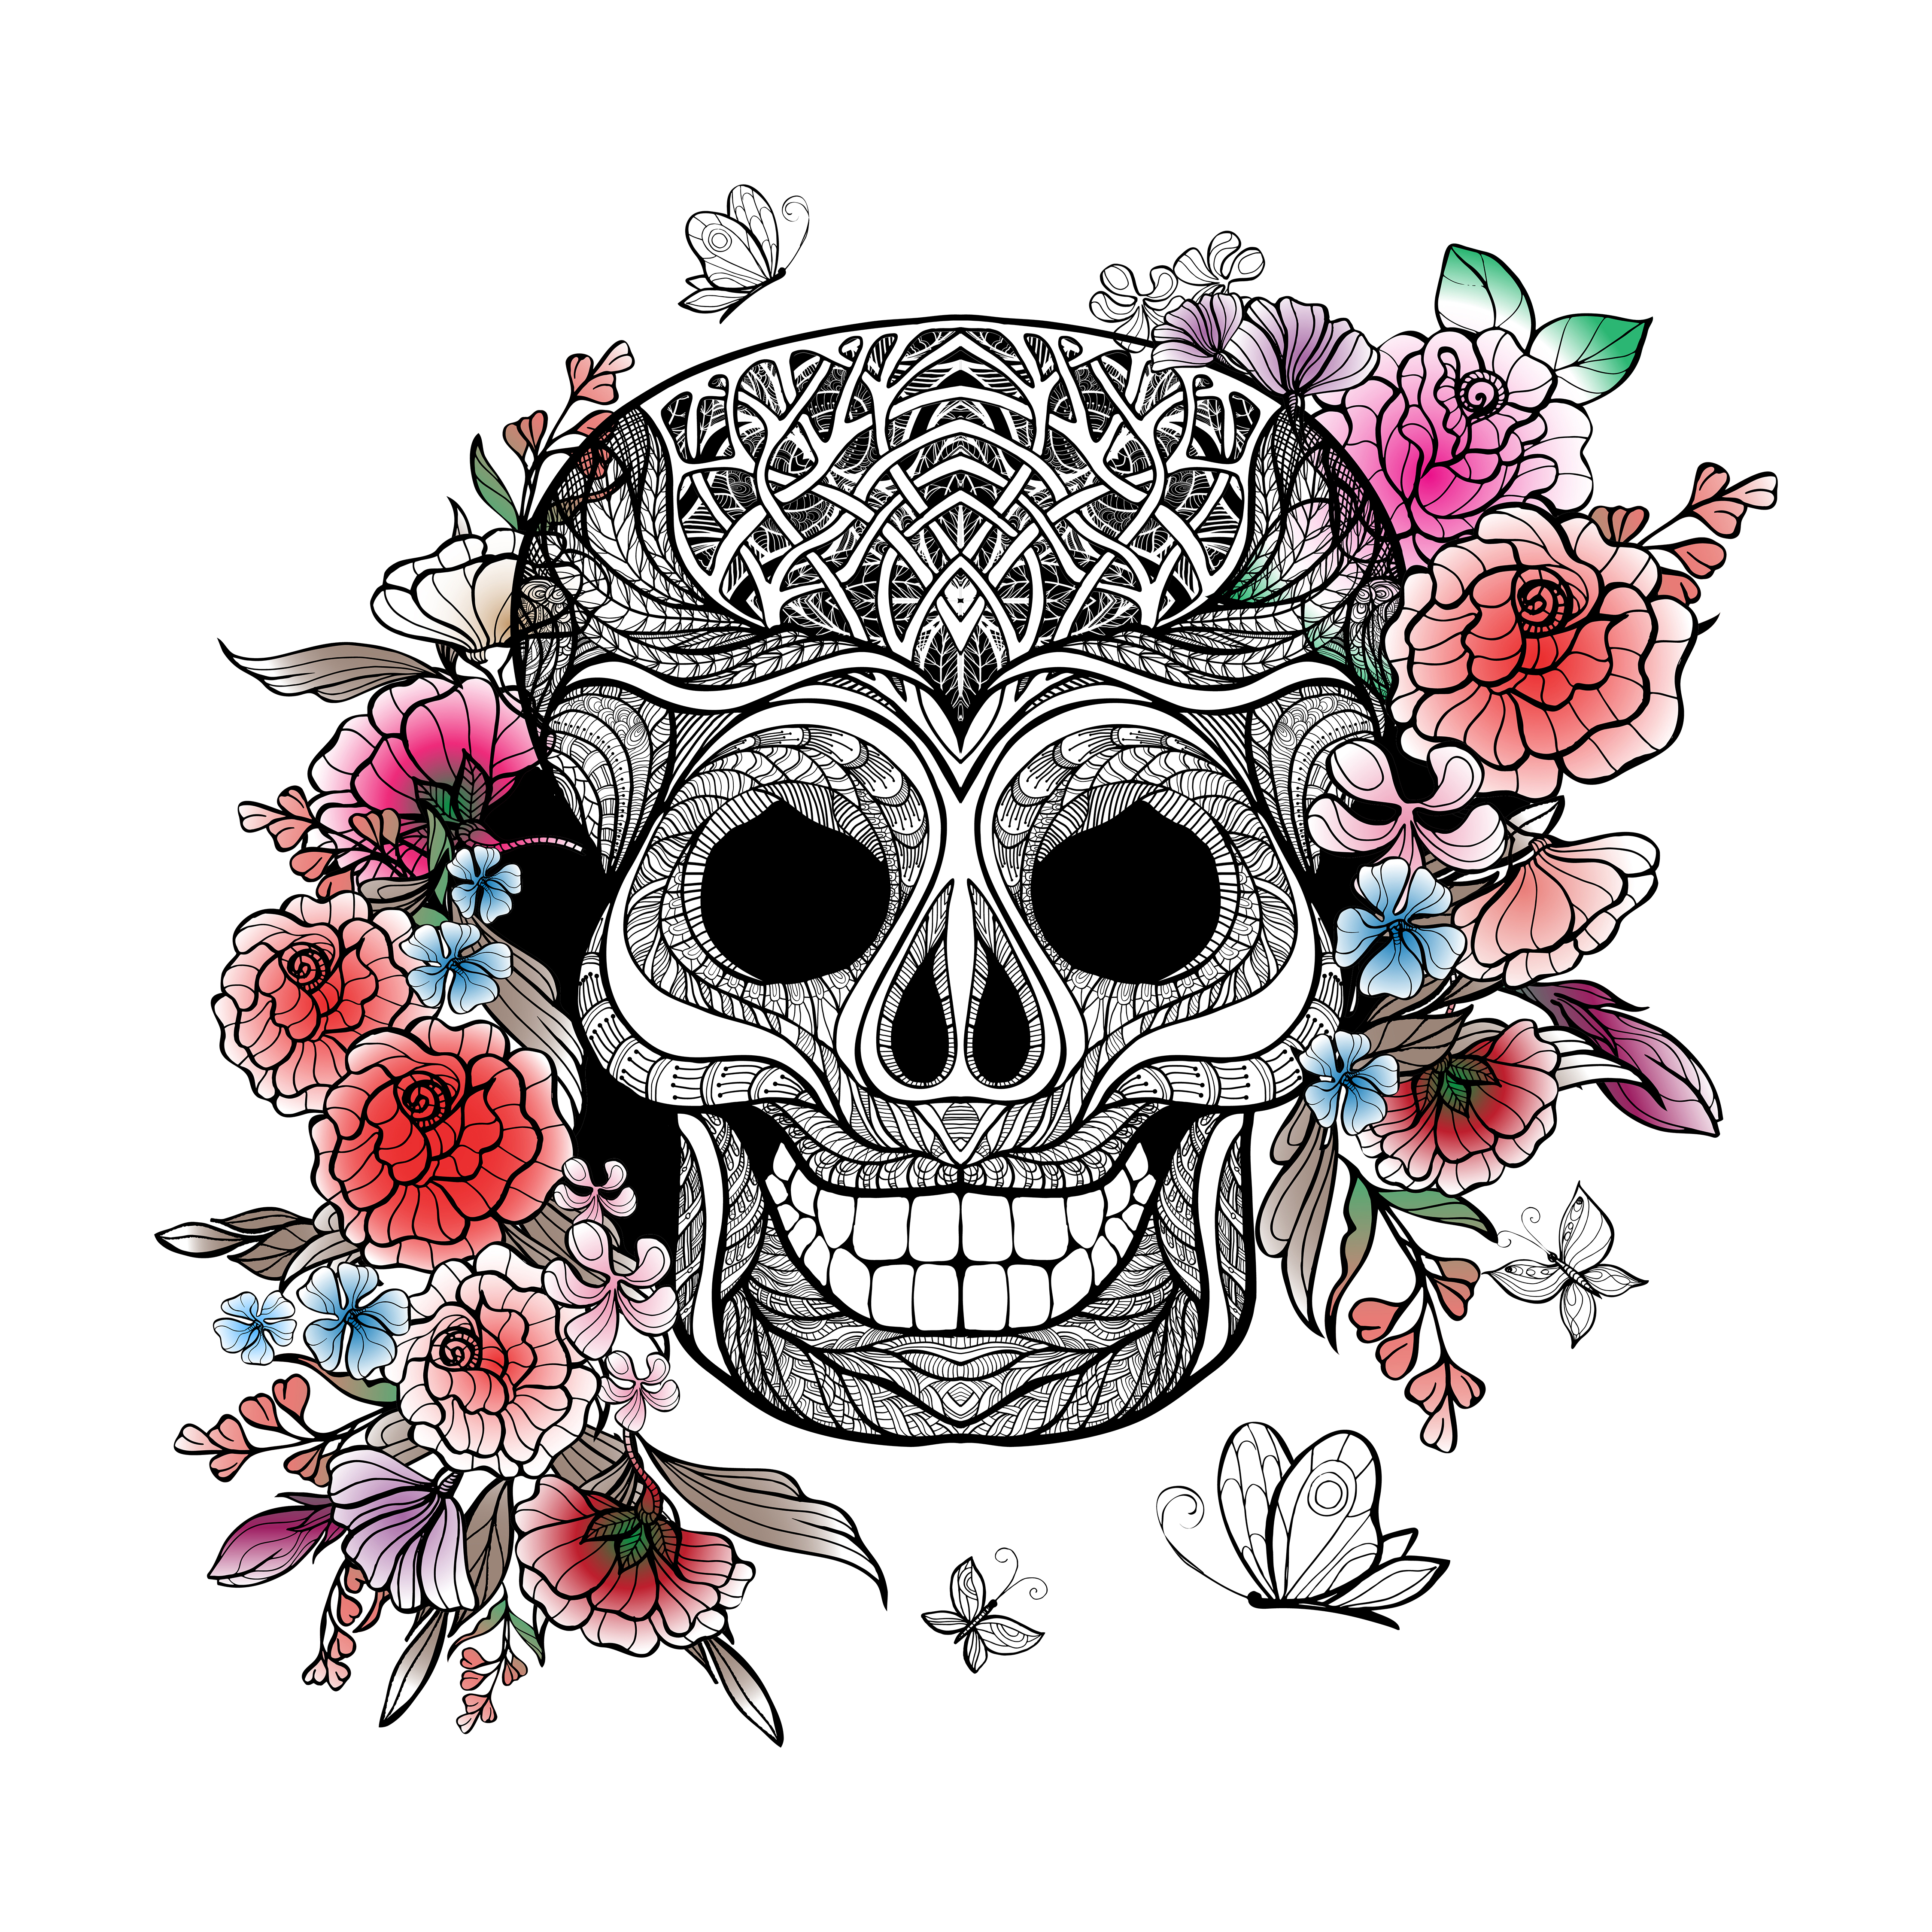 Skull And Flowers - Download Free Vectors, Clipart ...